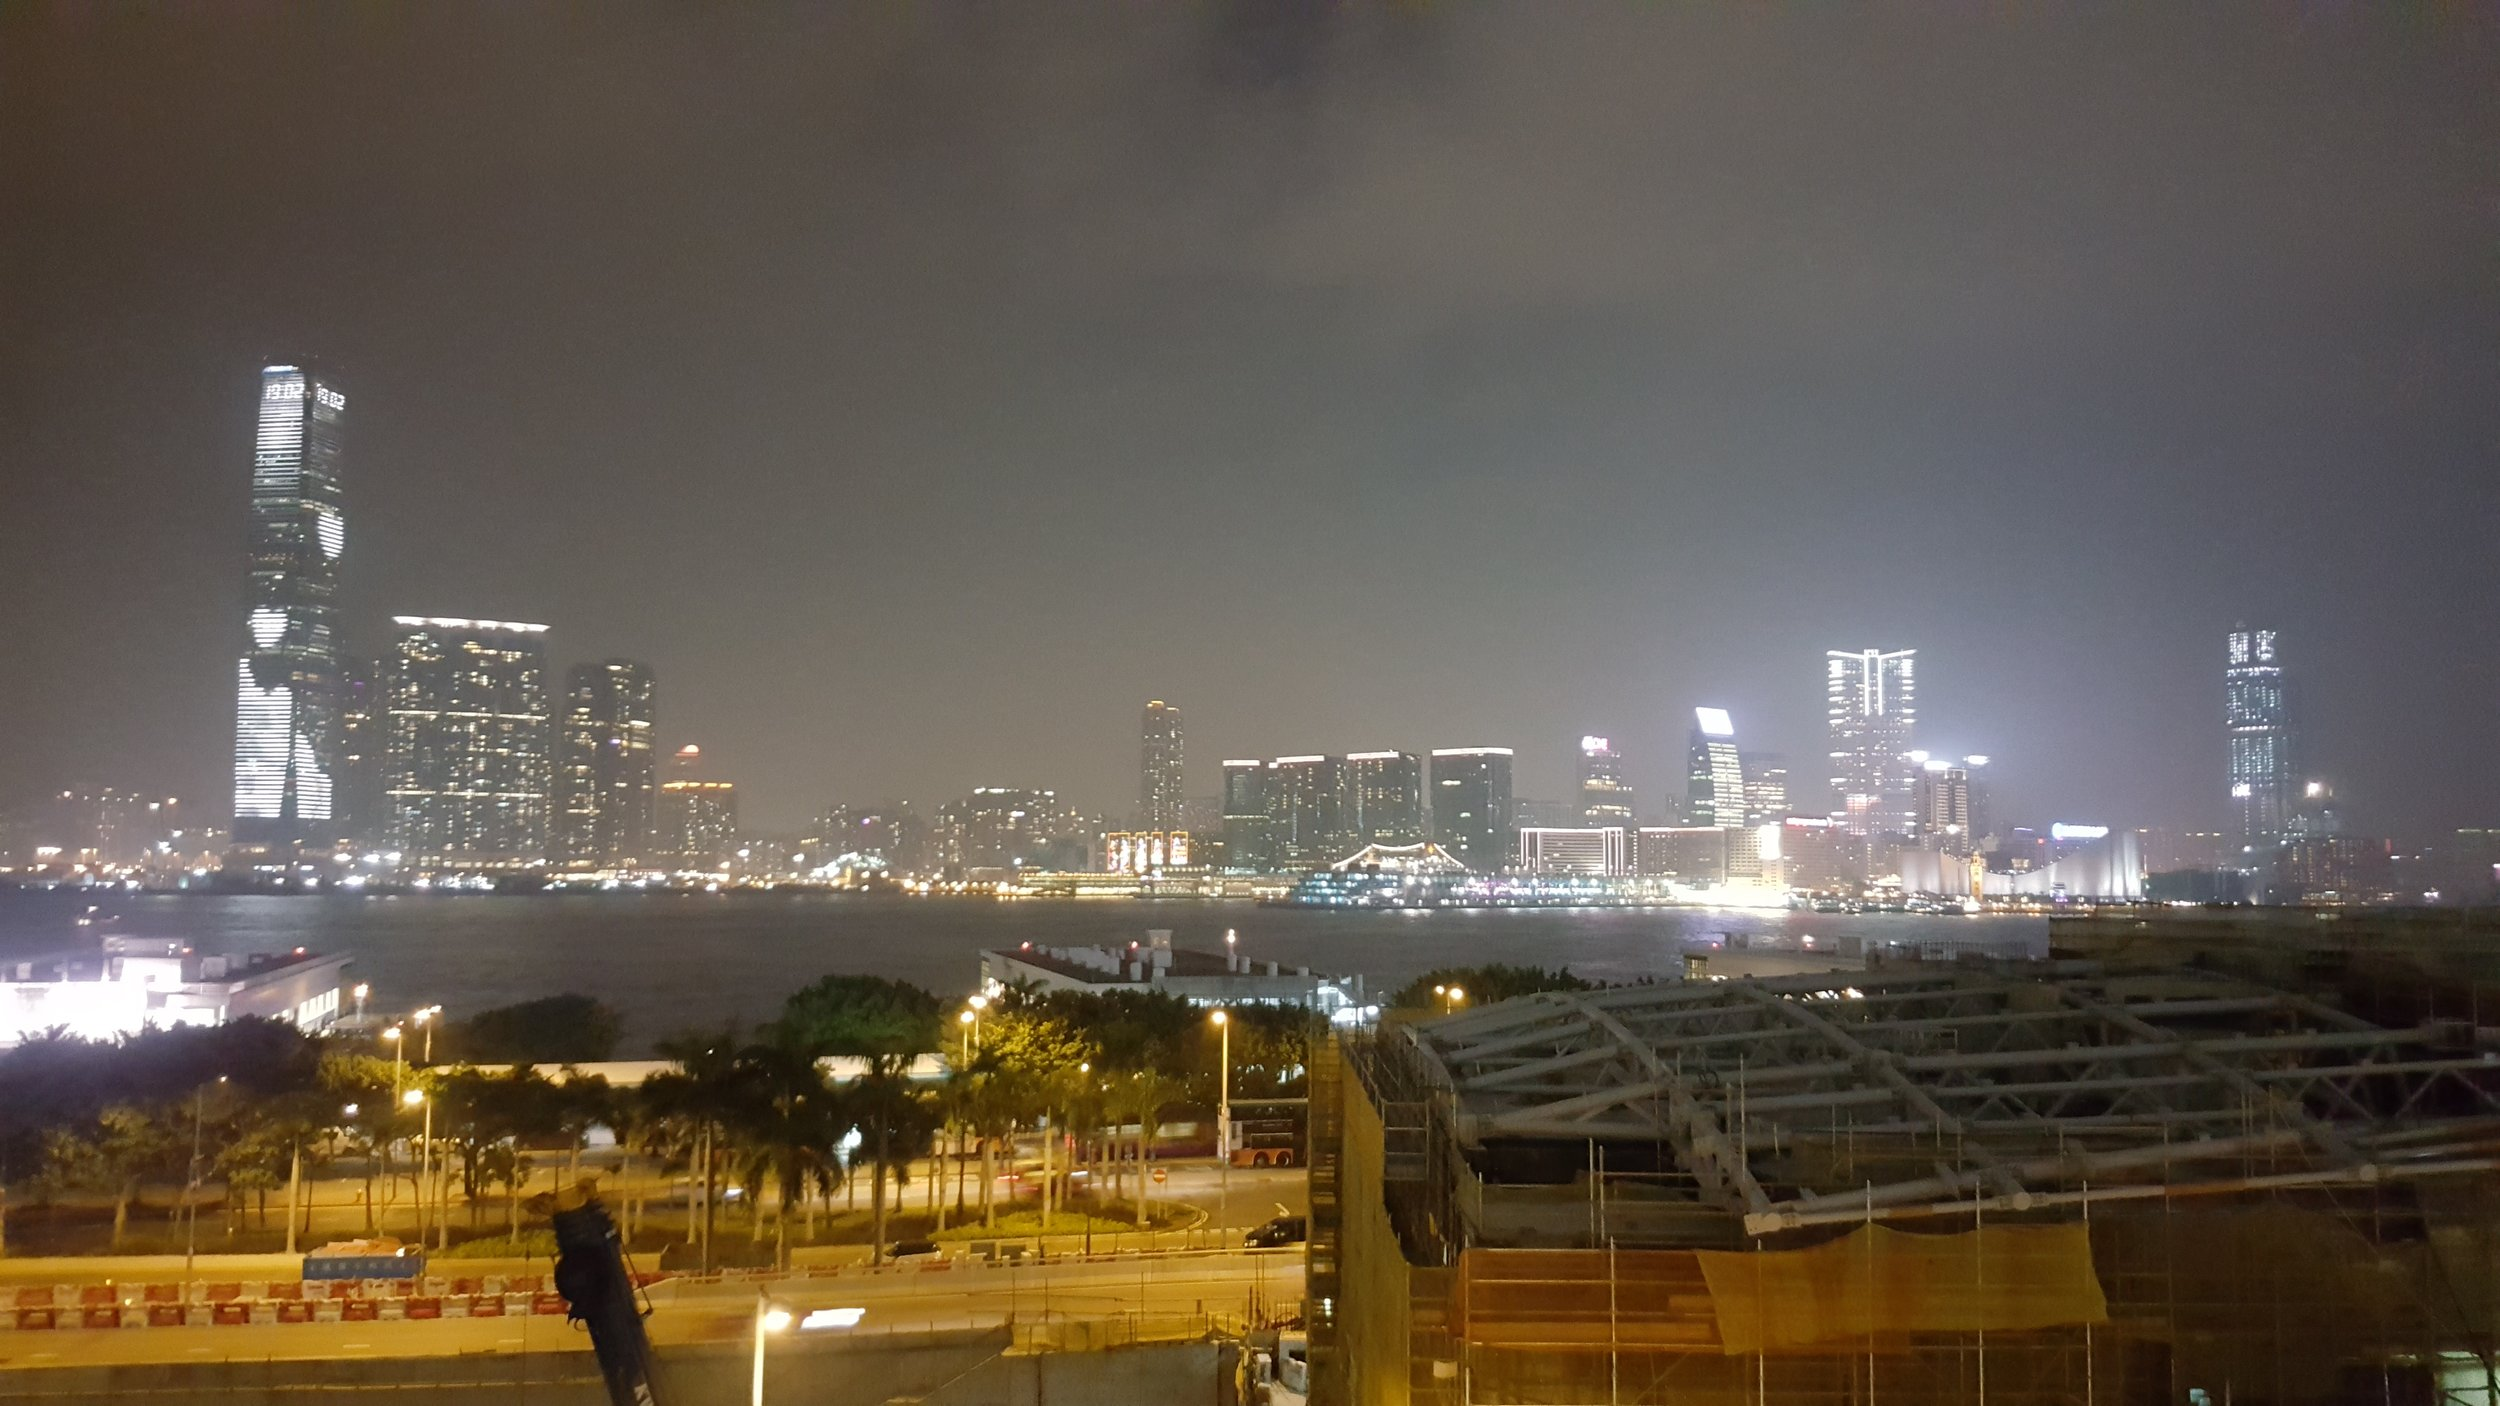 The other side of Hong Kong. View from Isola.